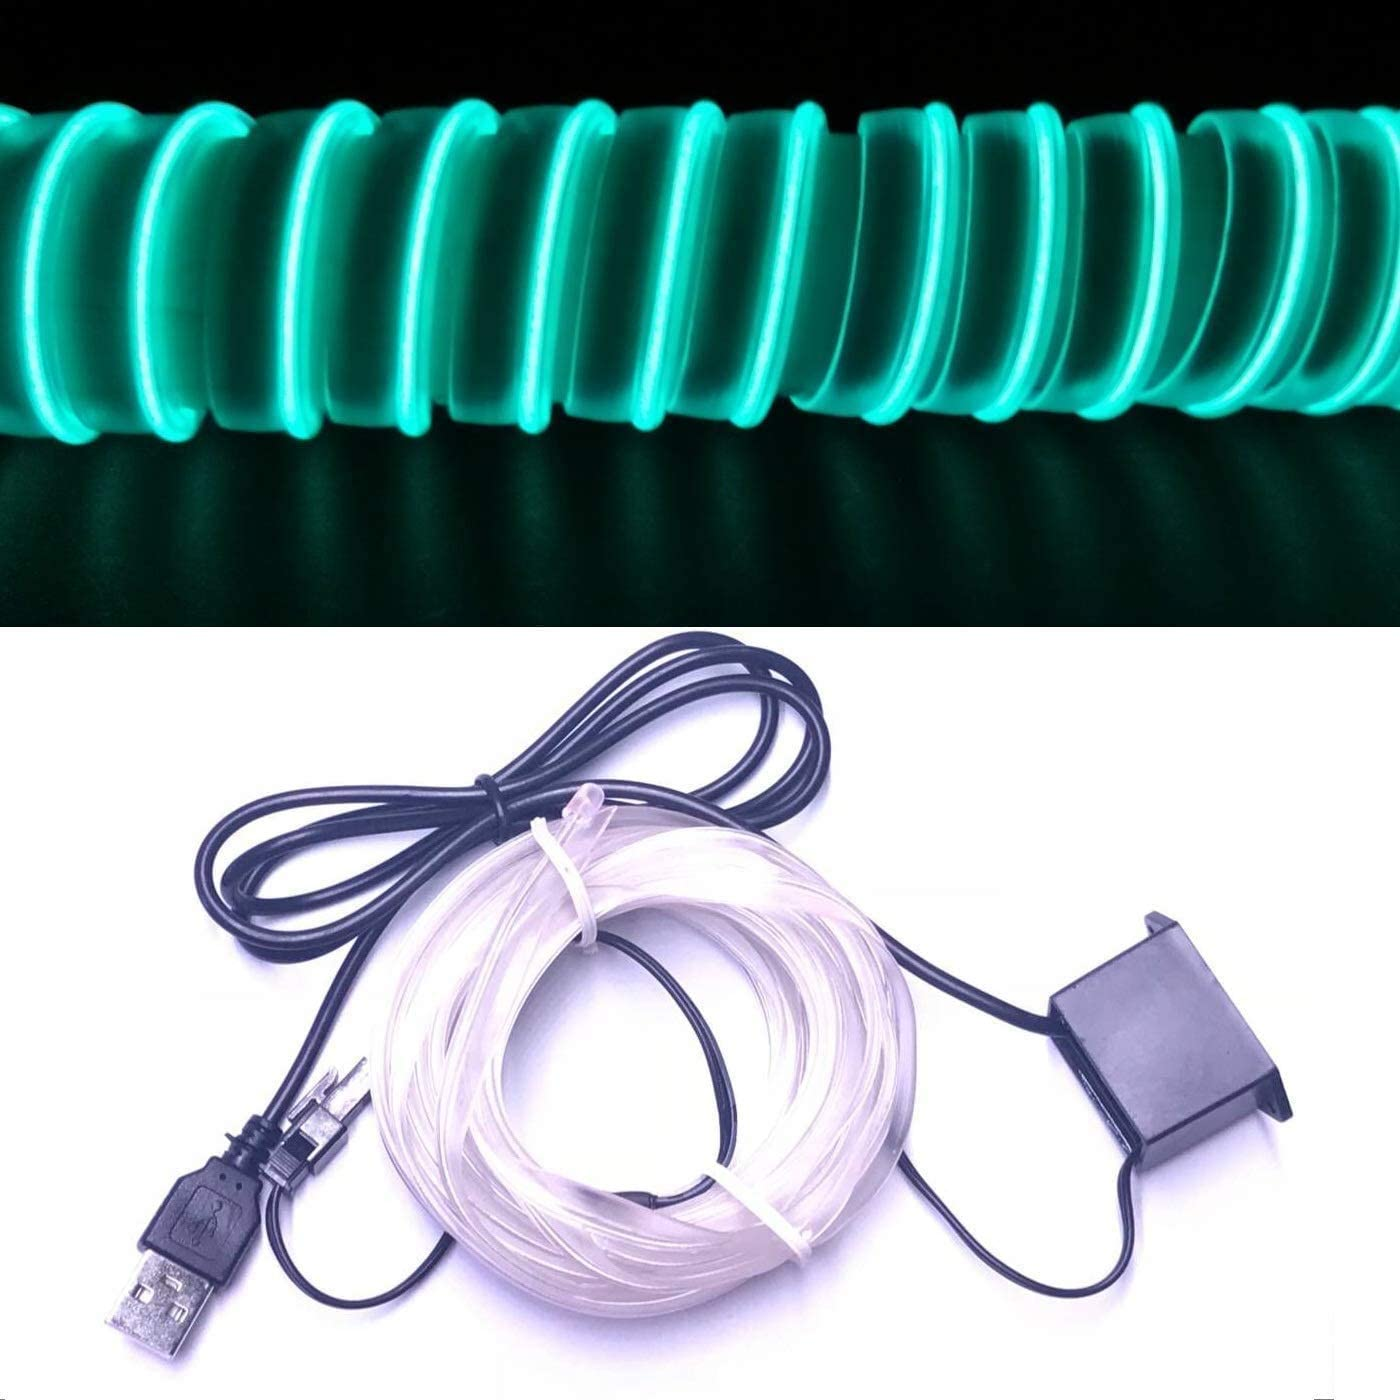 5m//15ft, Red KOJOTON USB Neon LED Light Rope Lights Glowing Electroluminescent Wire El Wire for Automotive Interior Car Cosplay Decoration